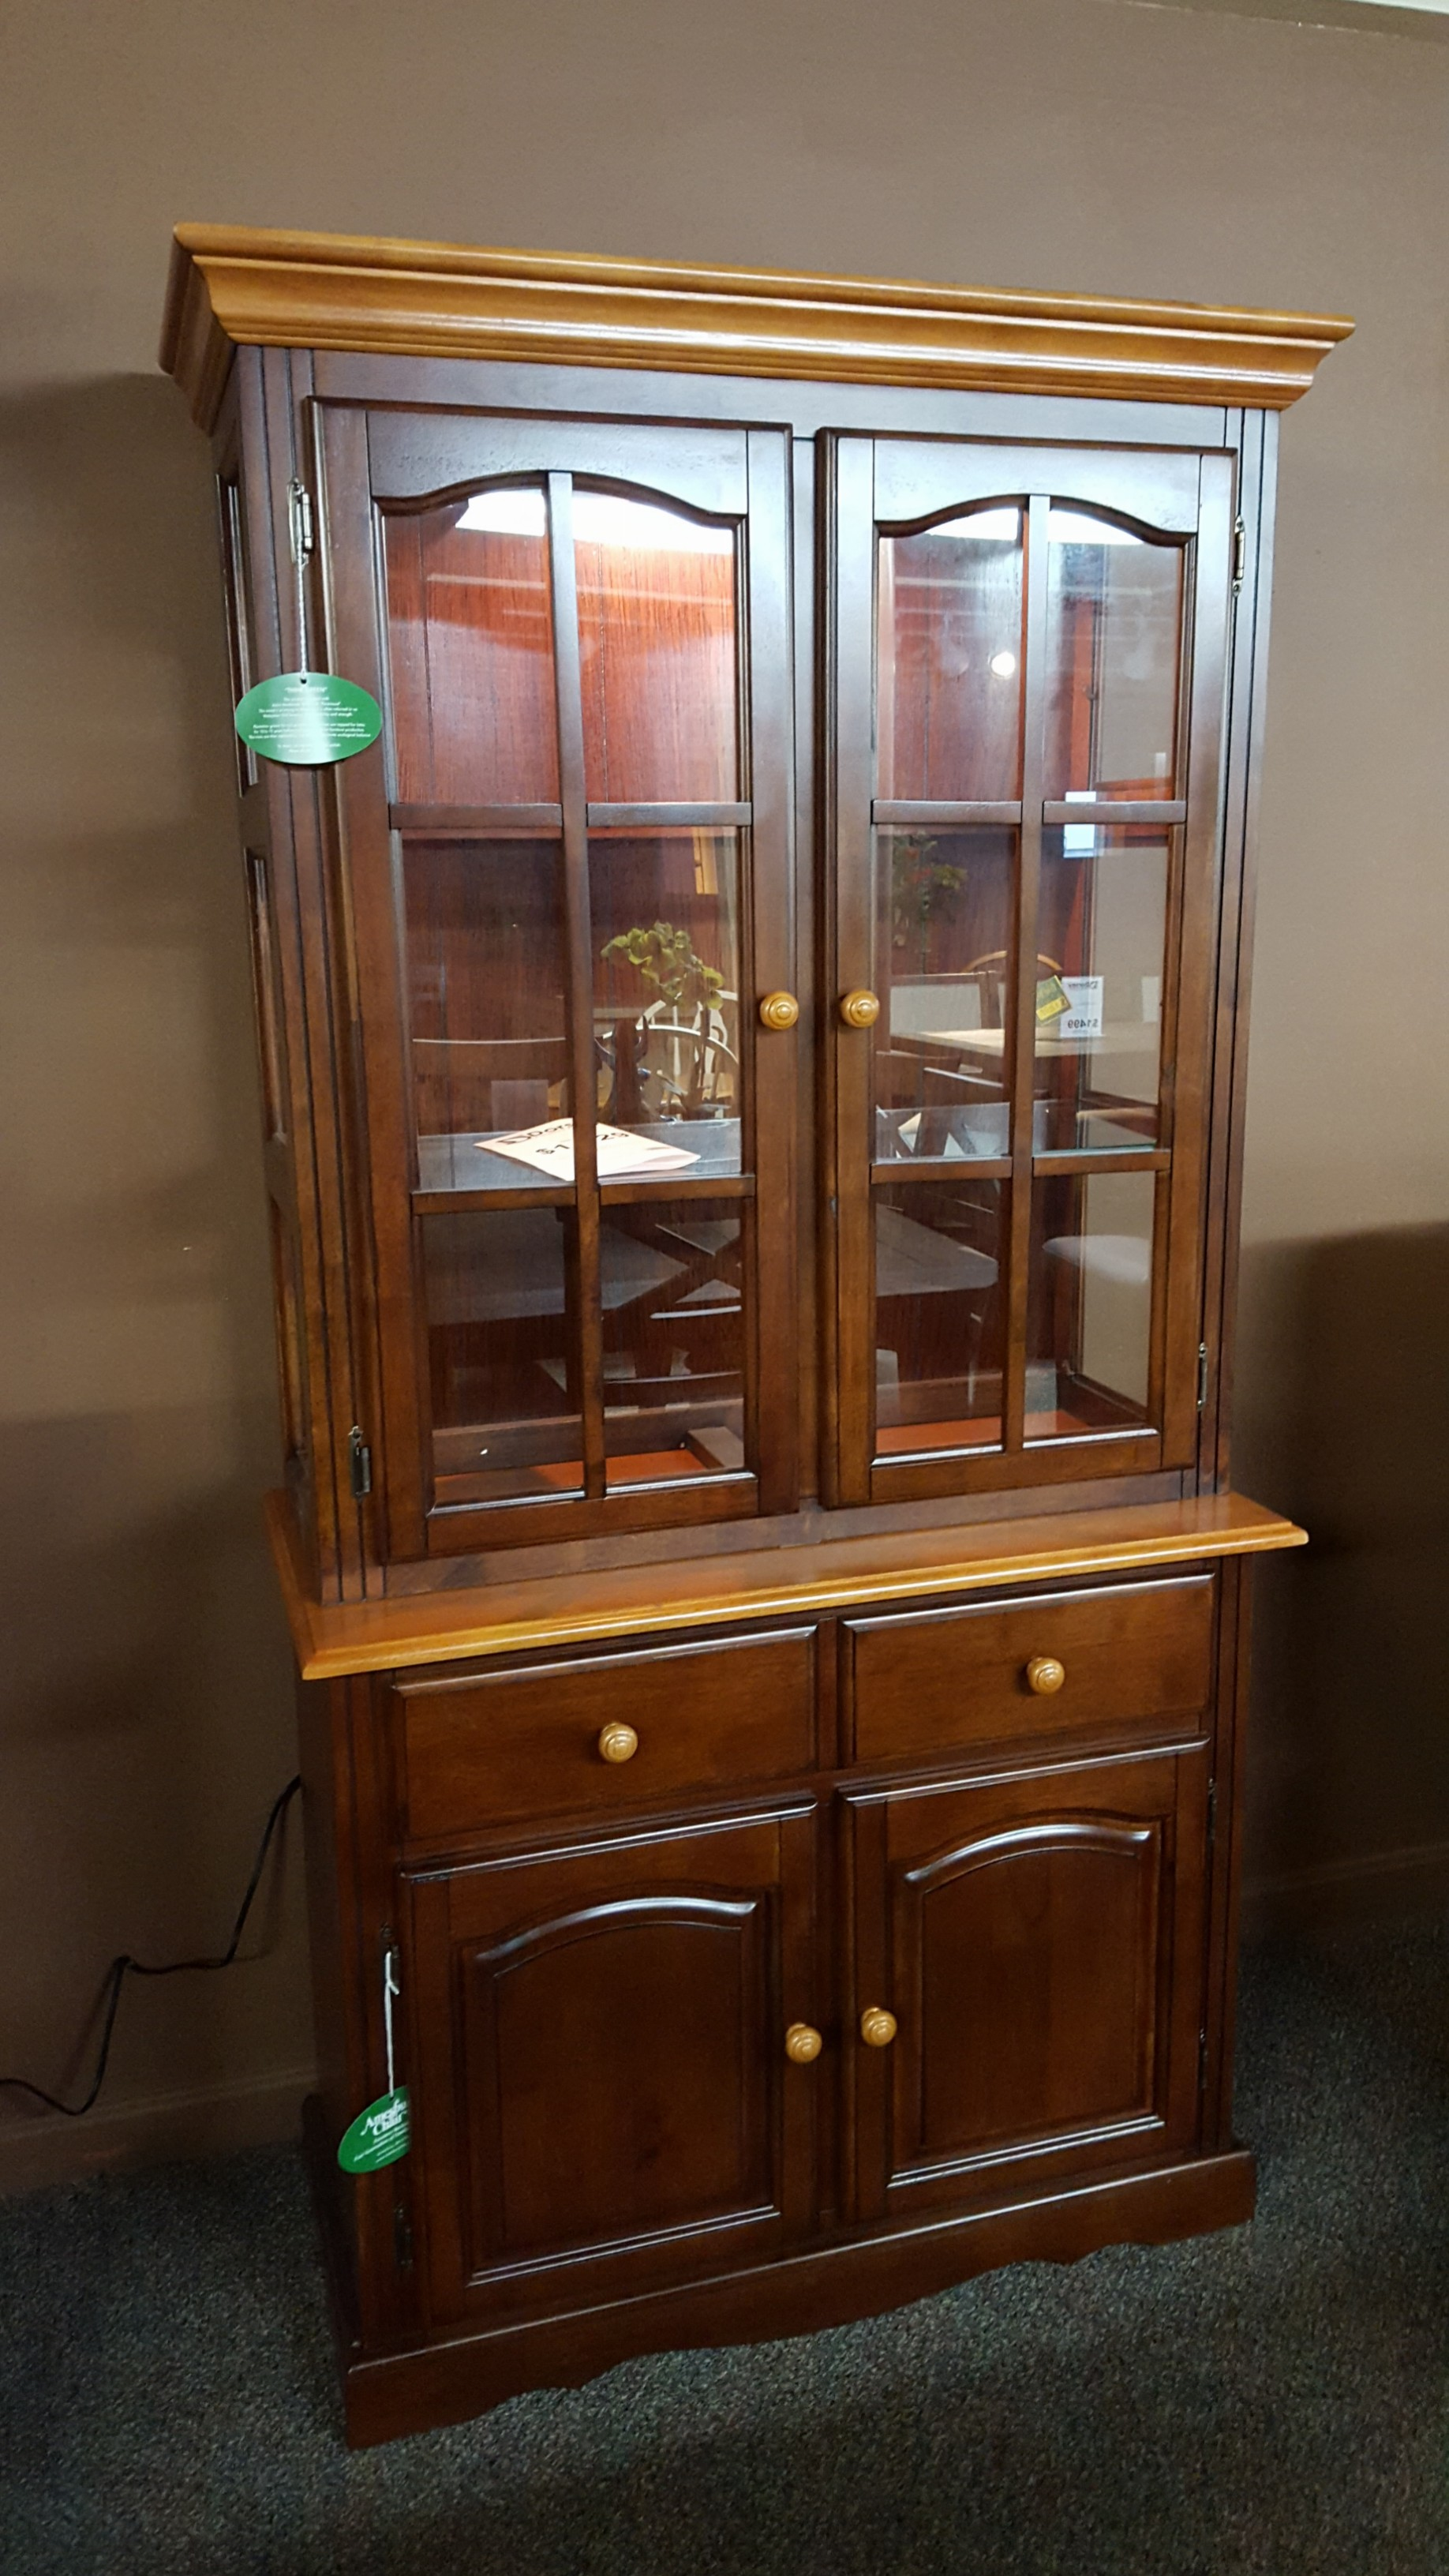 B37ccn/ch37ccn Base And China Hutch - Furniture Store ...